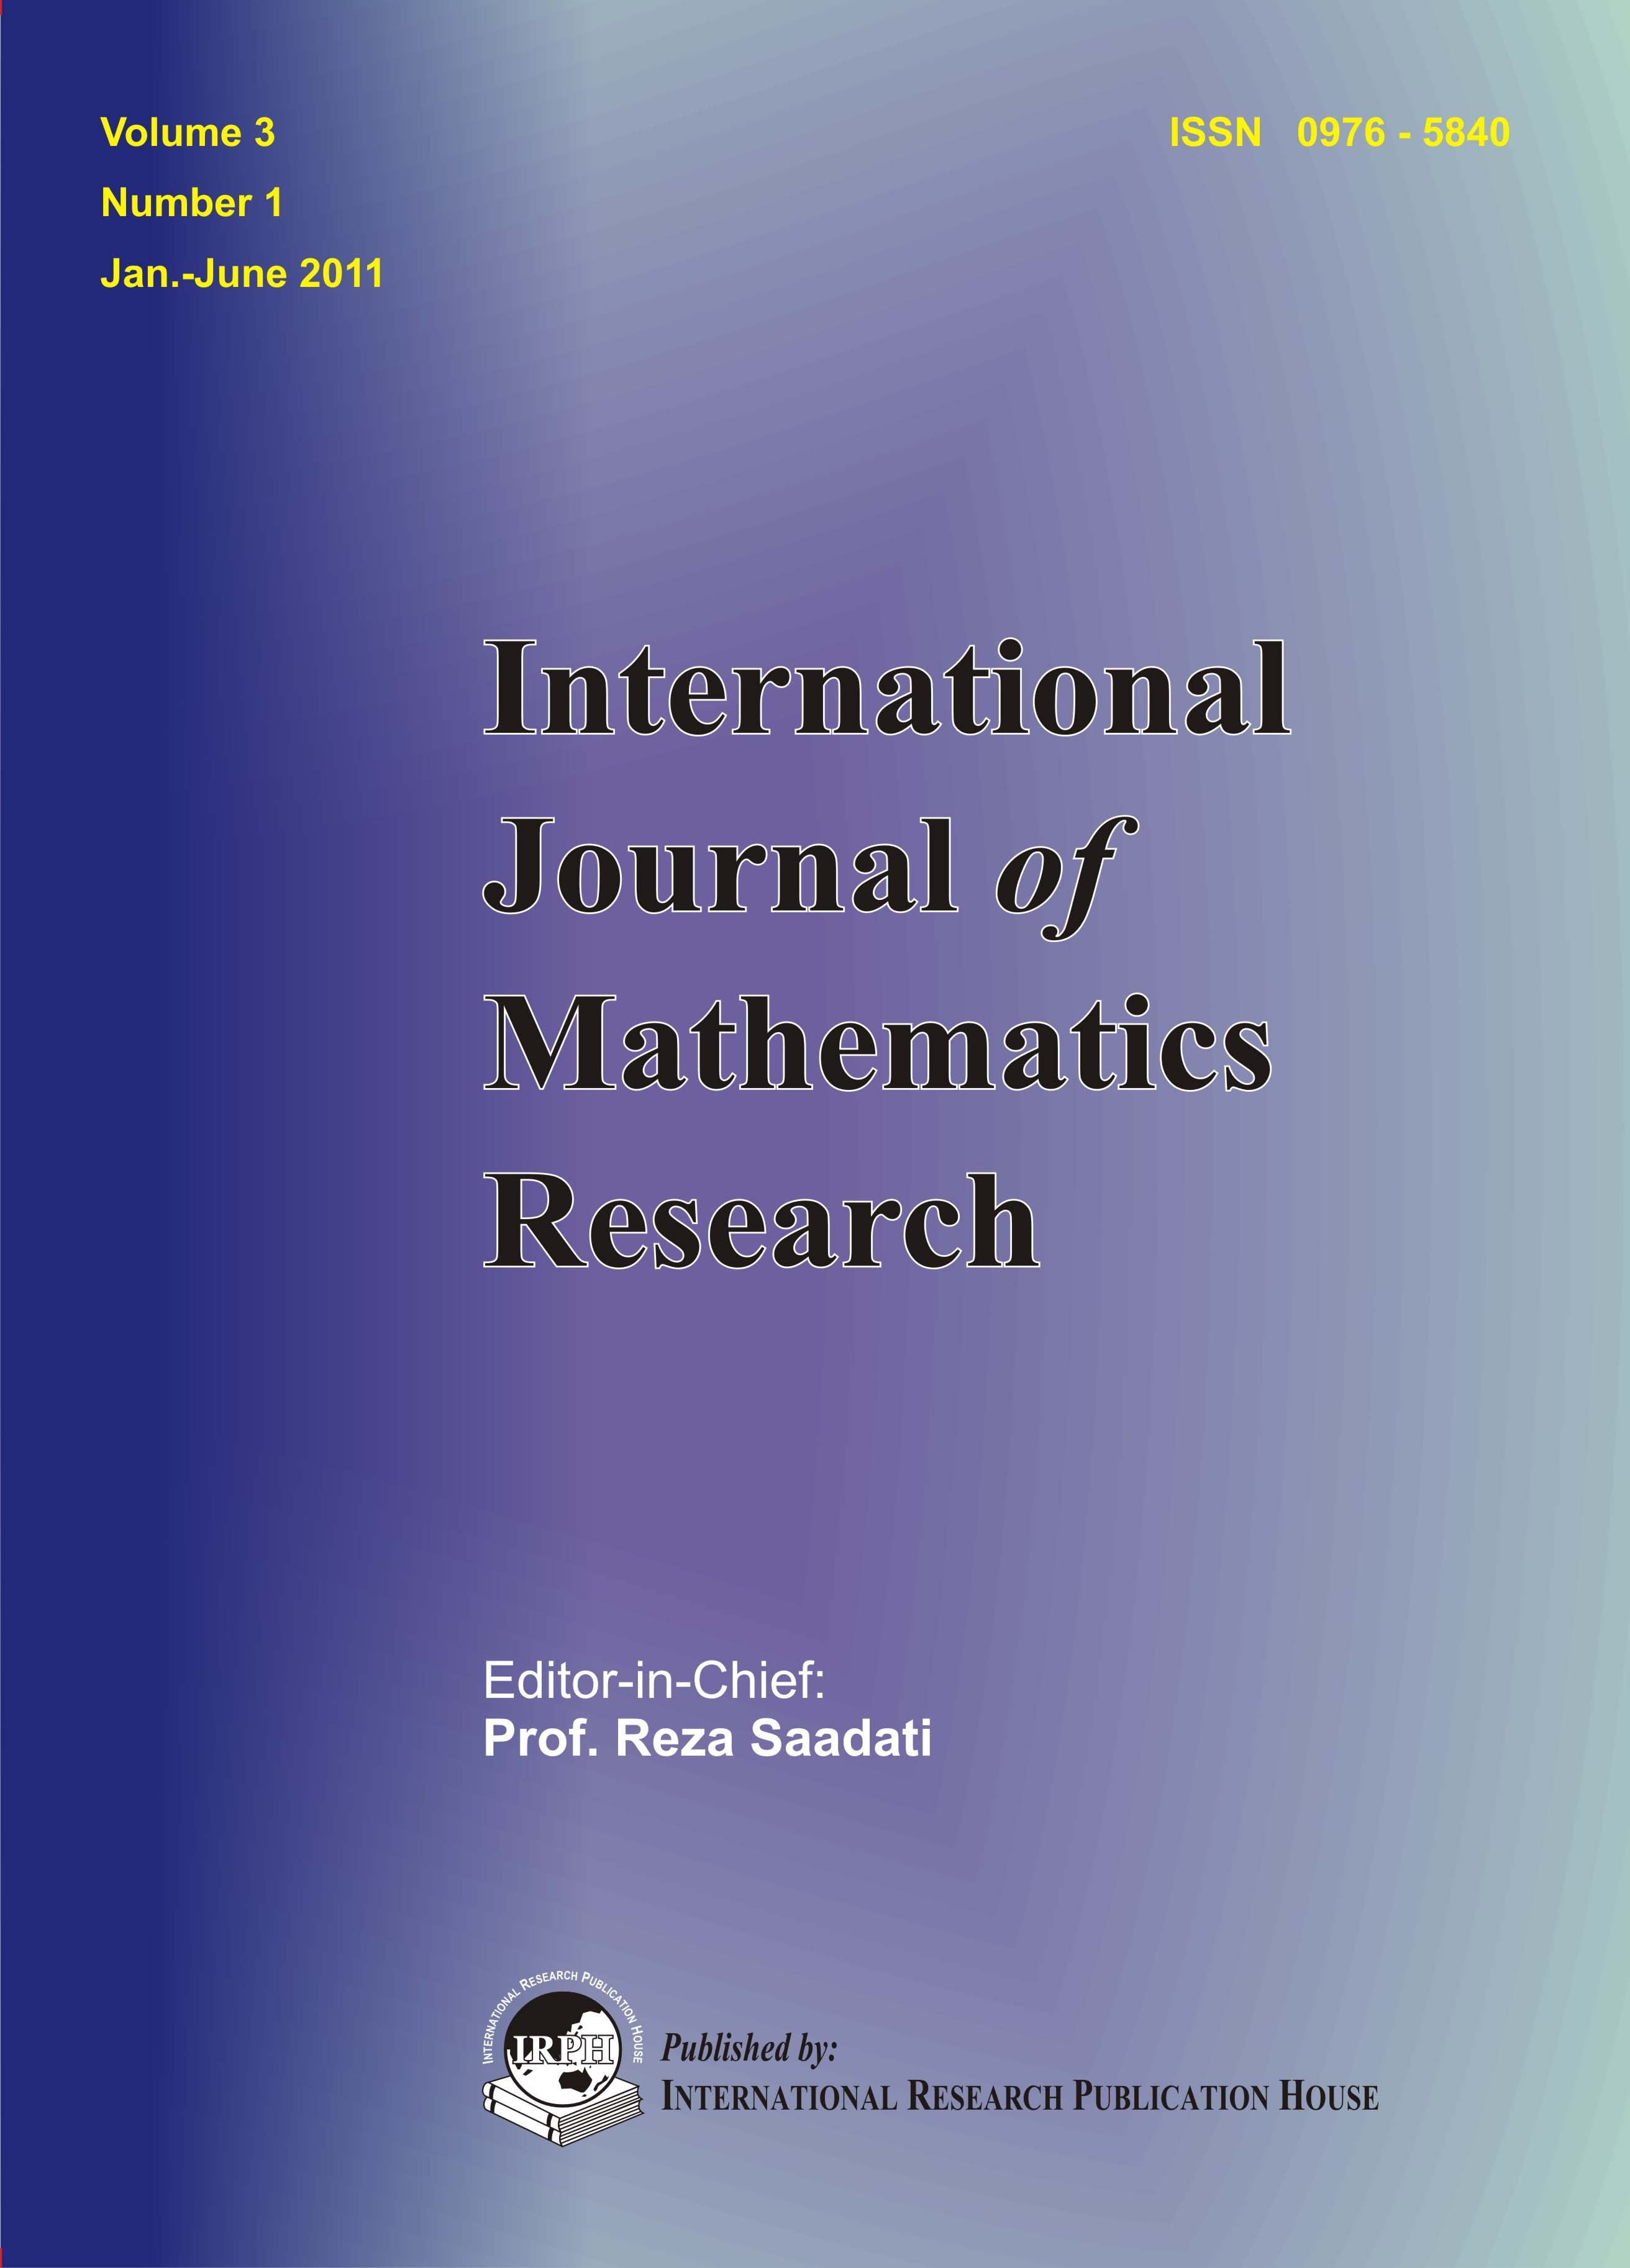 international math research papers International journal of mathematics trends and technology – ijmtt is an international, open access journal which provides an advanced forum for studies related to mathematical sciences, aims to publish original research papers and survey articles in all areas of mathematics, enhance the interests, talents, and achievements of all individuals.